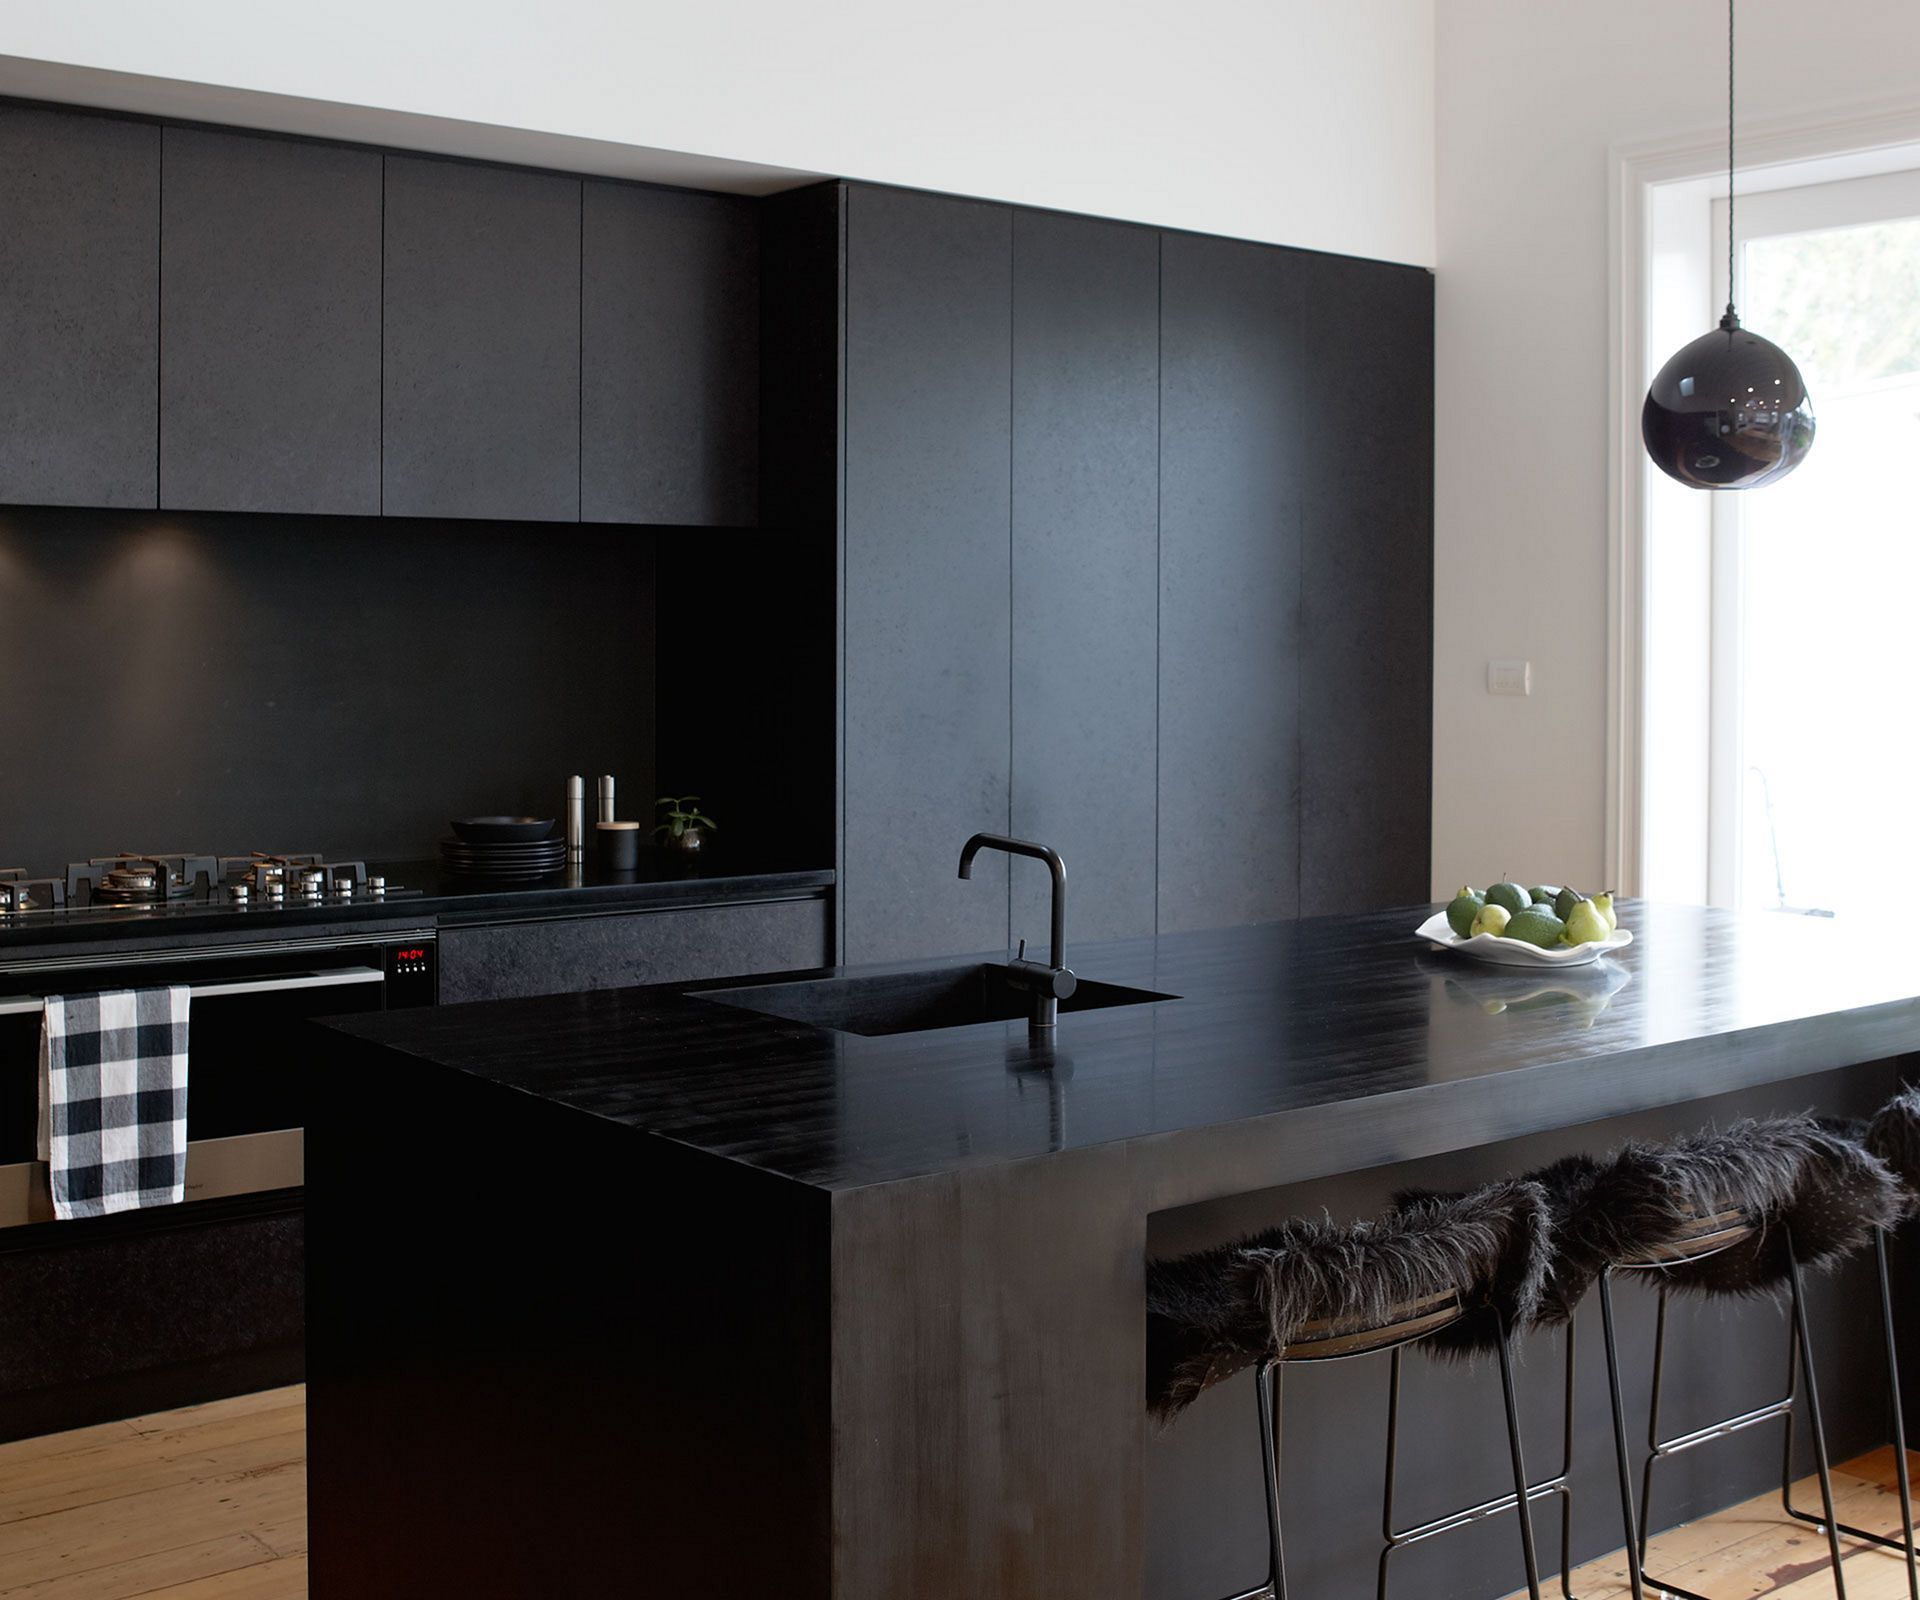 28 Small Kitchen Design Ideas: 28 Beautiful Black Kitchen Design Ideas You Need To Try At